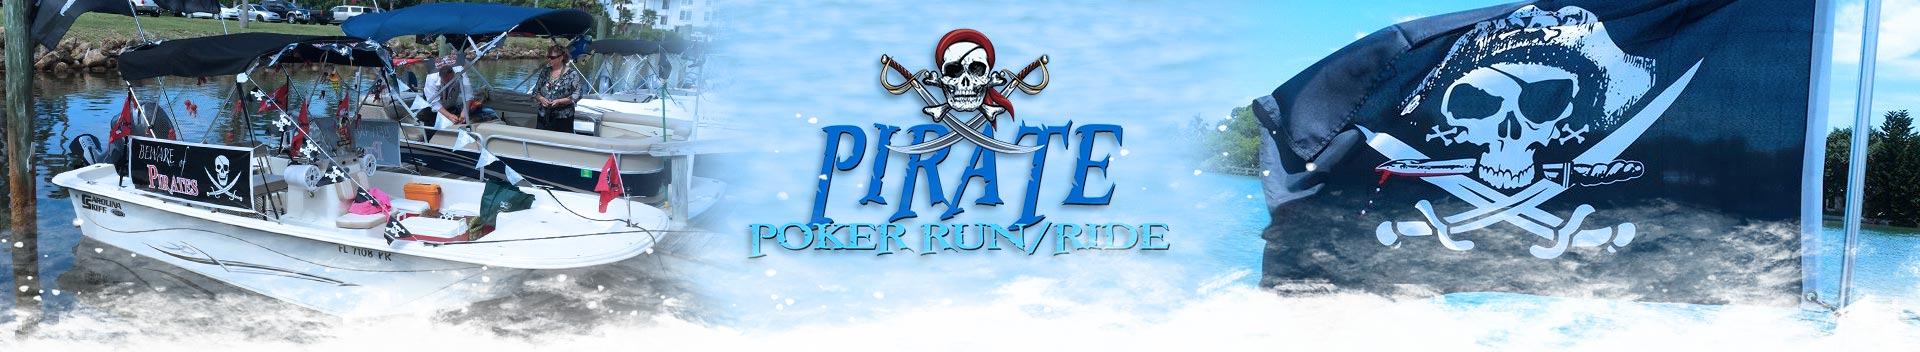 Pirate Poker Run Event Header